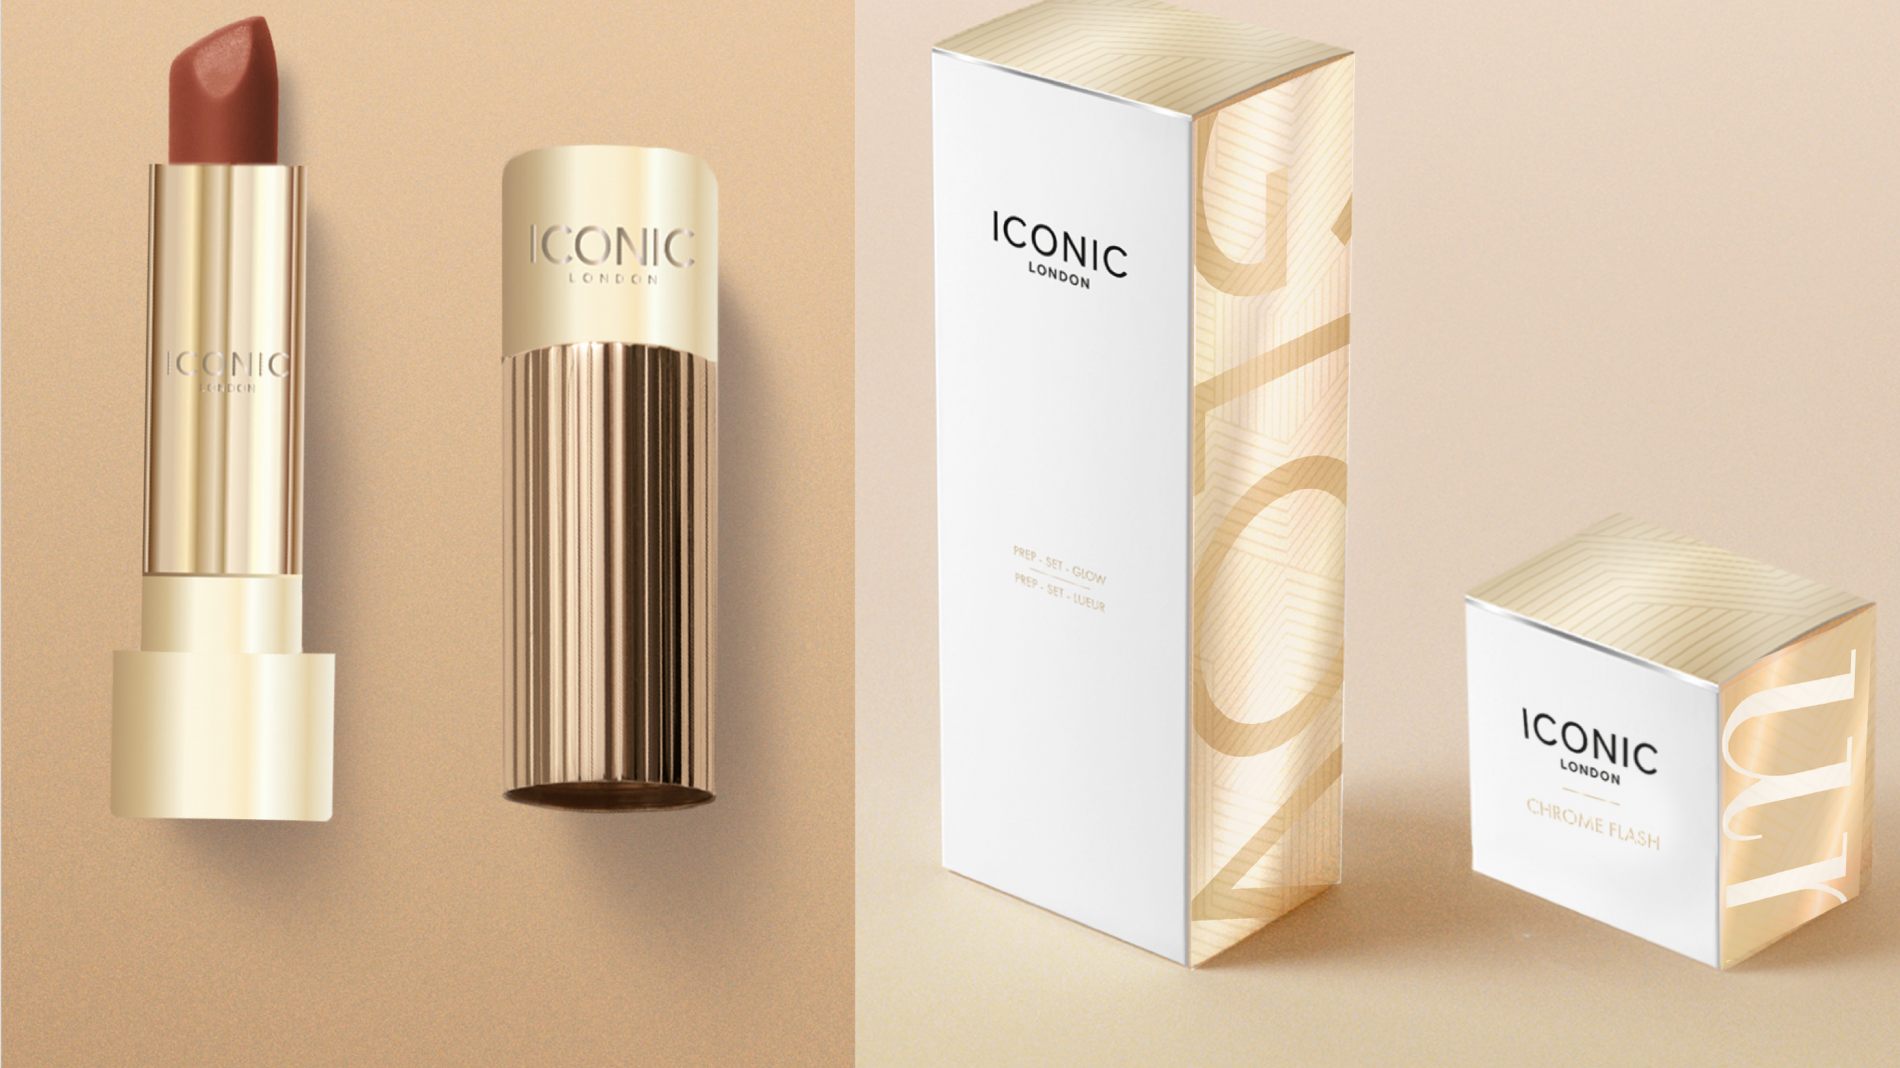 Iconic brand packaging